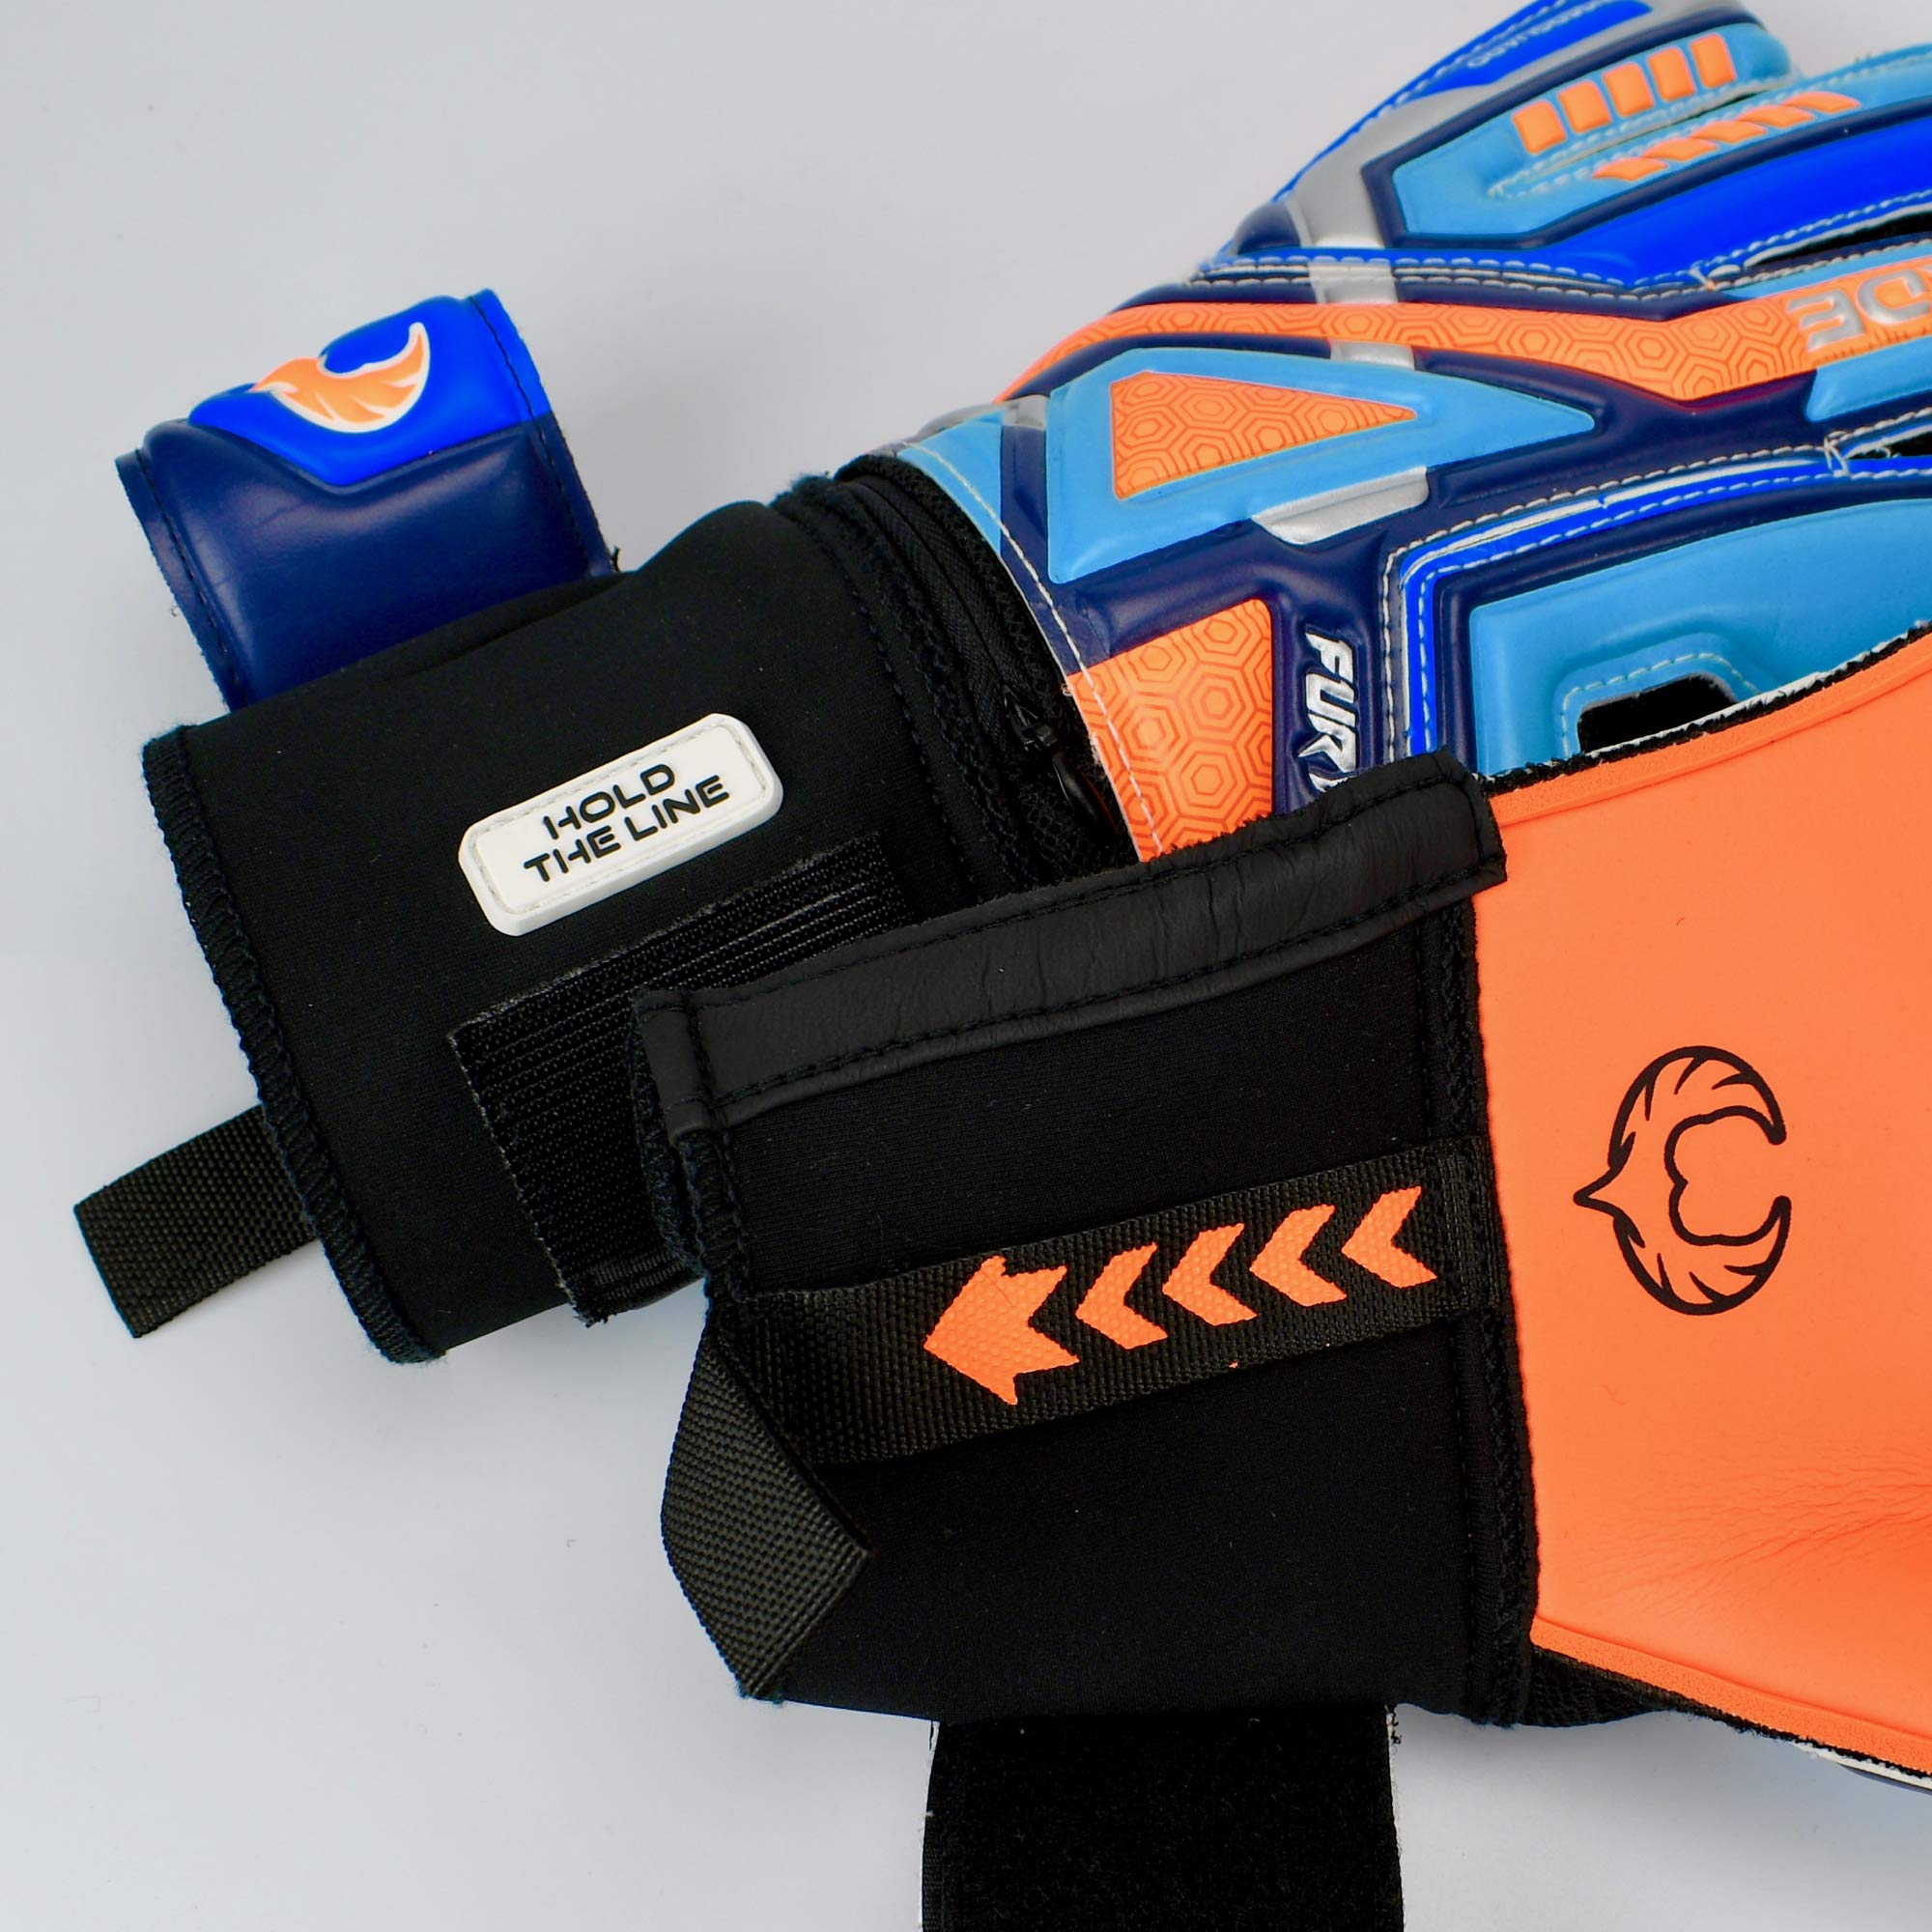 Renegade GK Fury Siege Roll Hybrid Cut Pro Level 4 Youth Goalkeeper Gloves with Pro-Tek Fingersaves - Kids Soccer Goalie Gloves Youth Size 7 - Boys & Girls Goalie Gloves Soccer - Blue, Orange, Black by Renegade GK (Image #3)